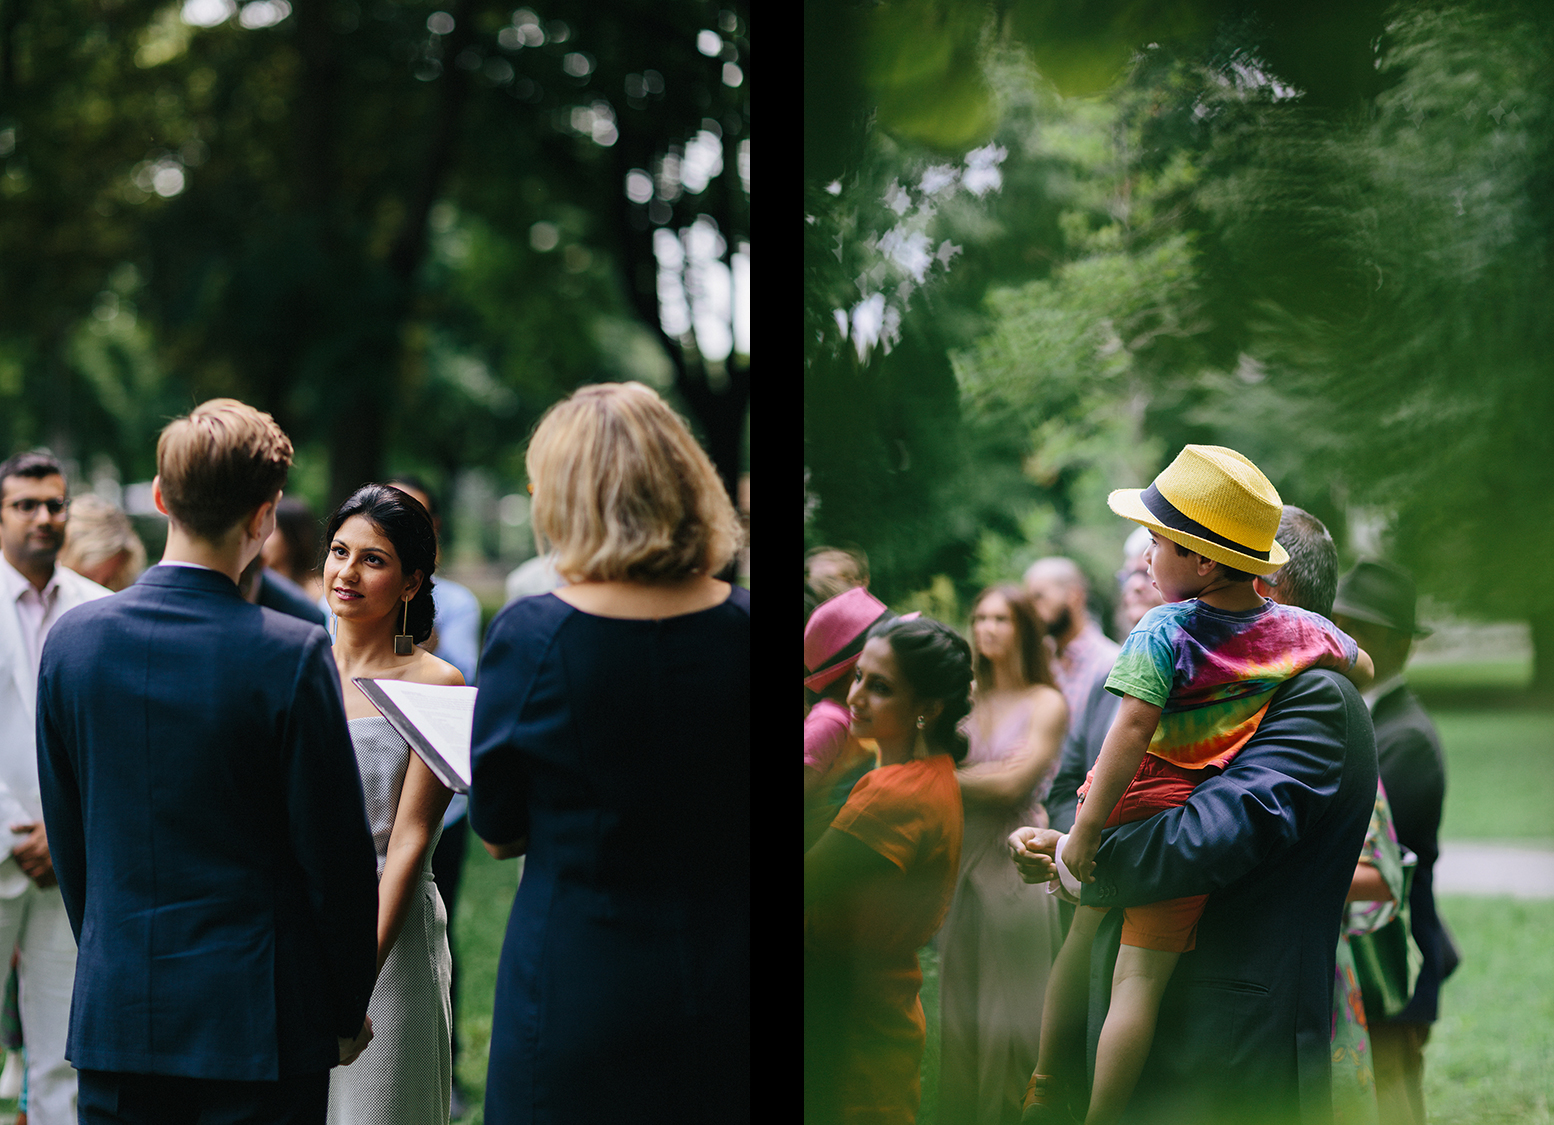 4-Intimate-Toronto-Pop-Up-Elopement-Downtown-Urban-film-analog-photography-toronto-wedding-photographers-alternative-hipster-bride-and-groom-badass-ceremony-guests-watching-mom-laughing.jpg